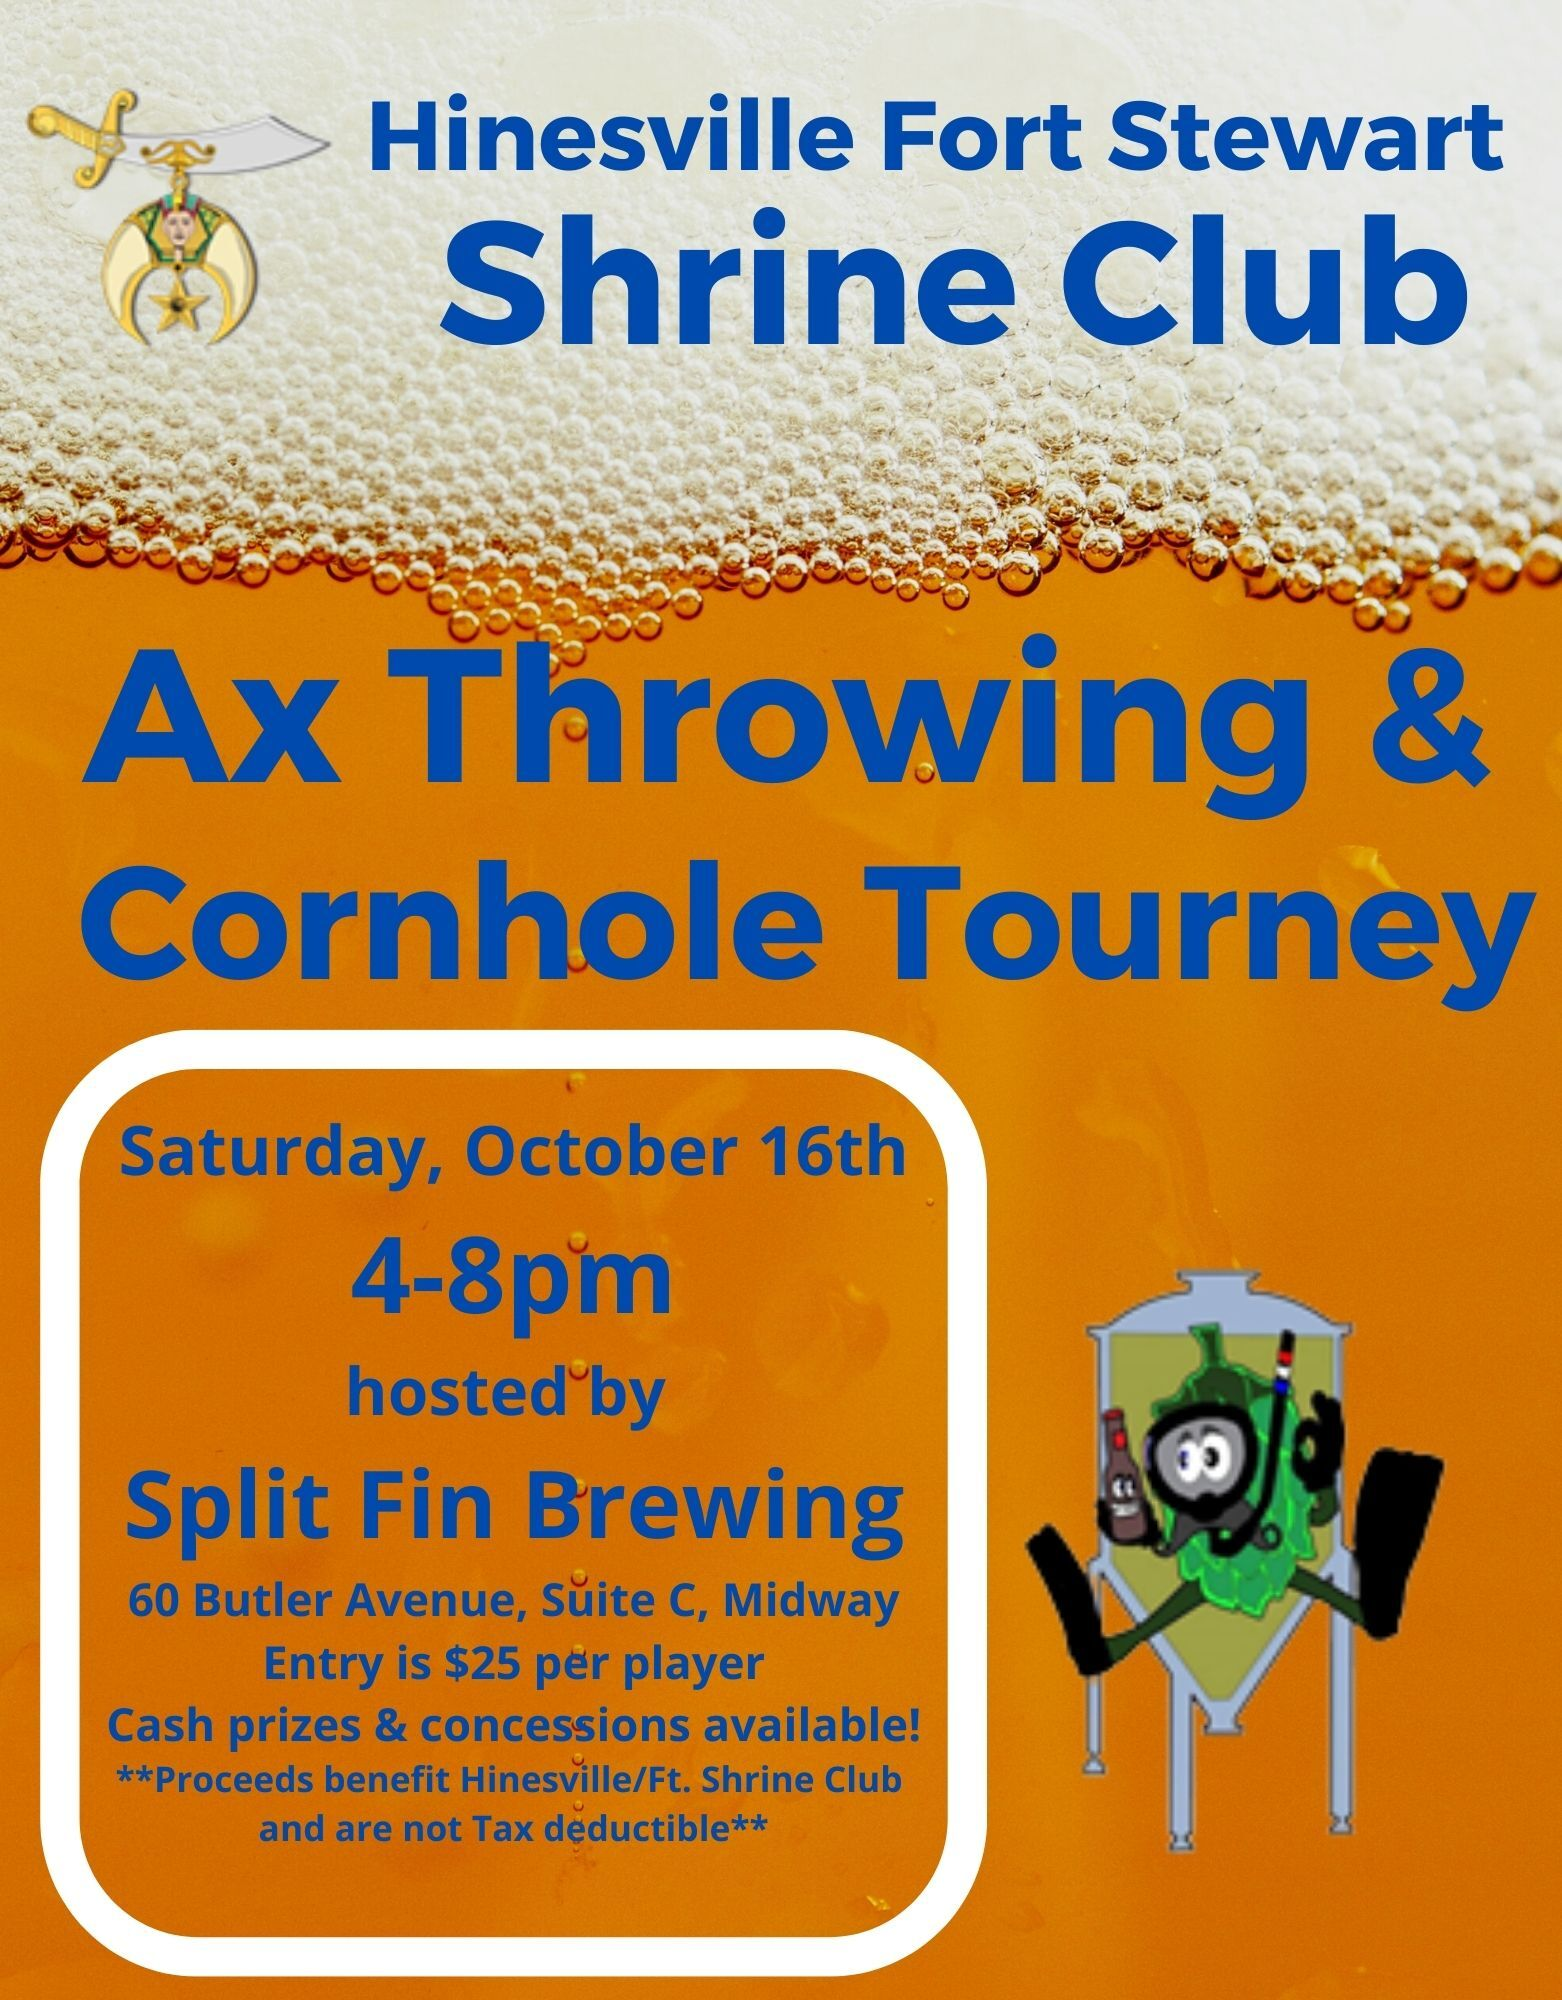 Hinesville Fort Stewart Shrine Club Ax Throwing and Cornhole Tourney